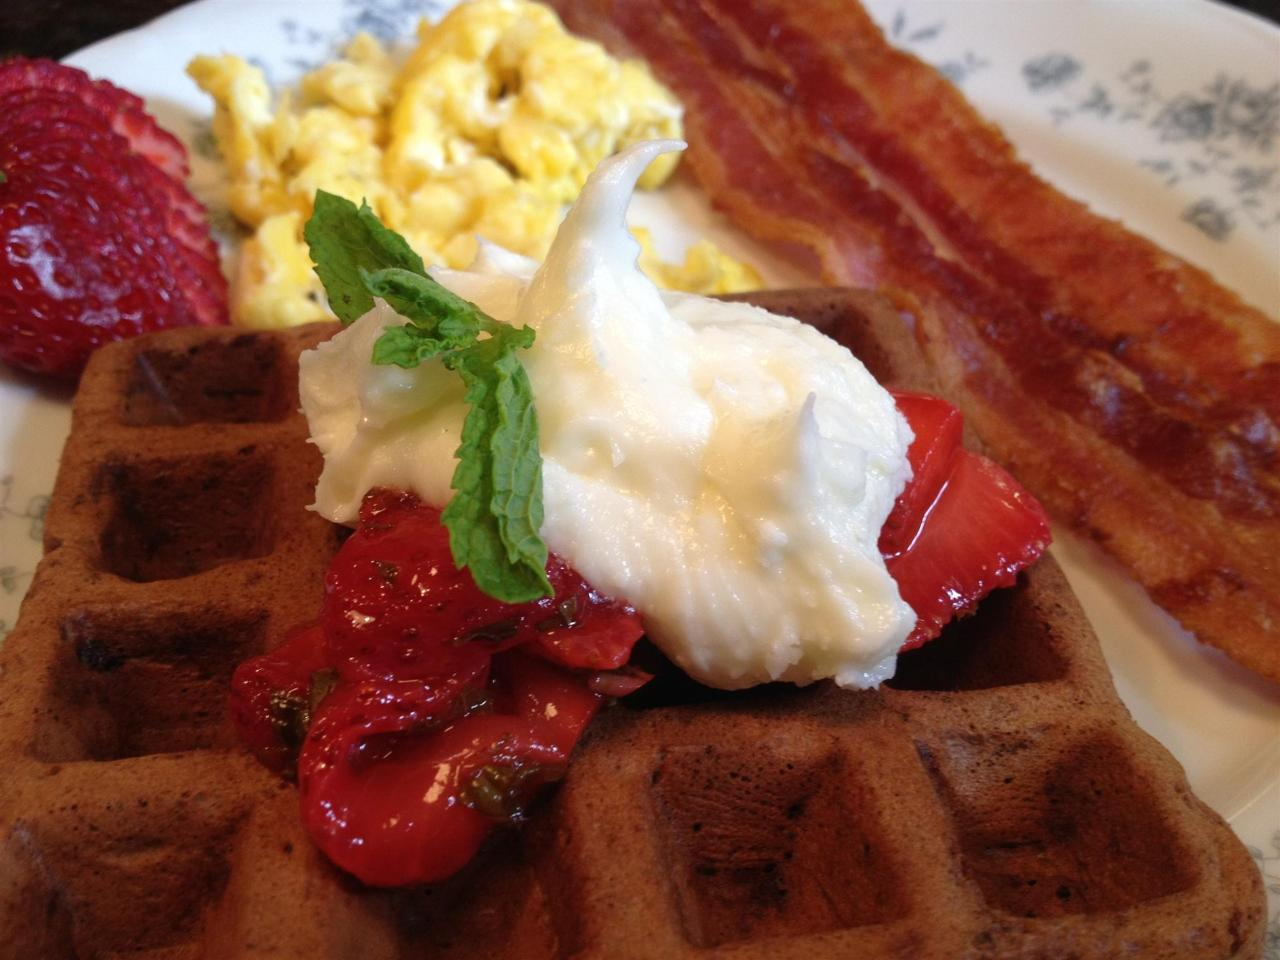 Waffles, Creme Fresh, Local Strawberries, Scrambled Eggs, & Bacon